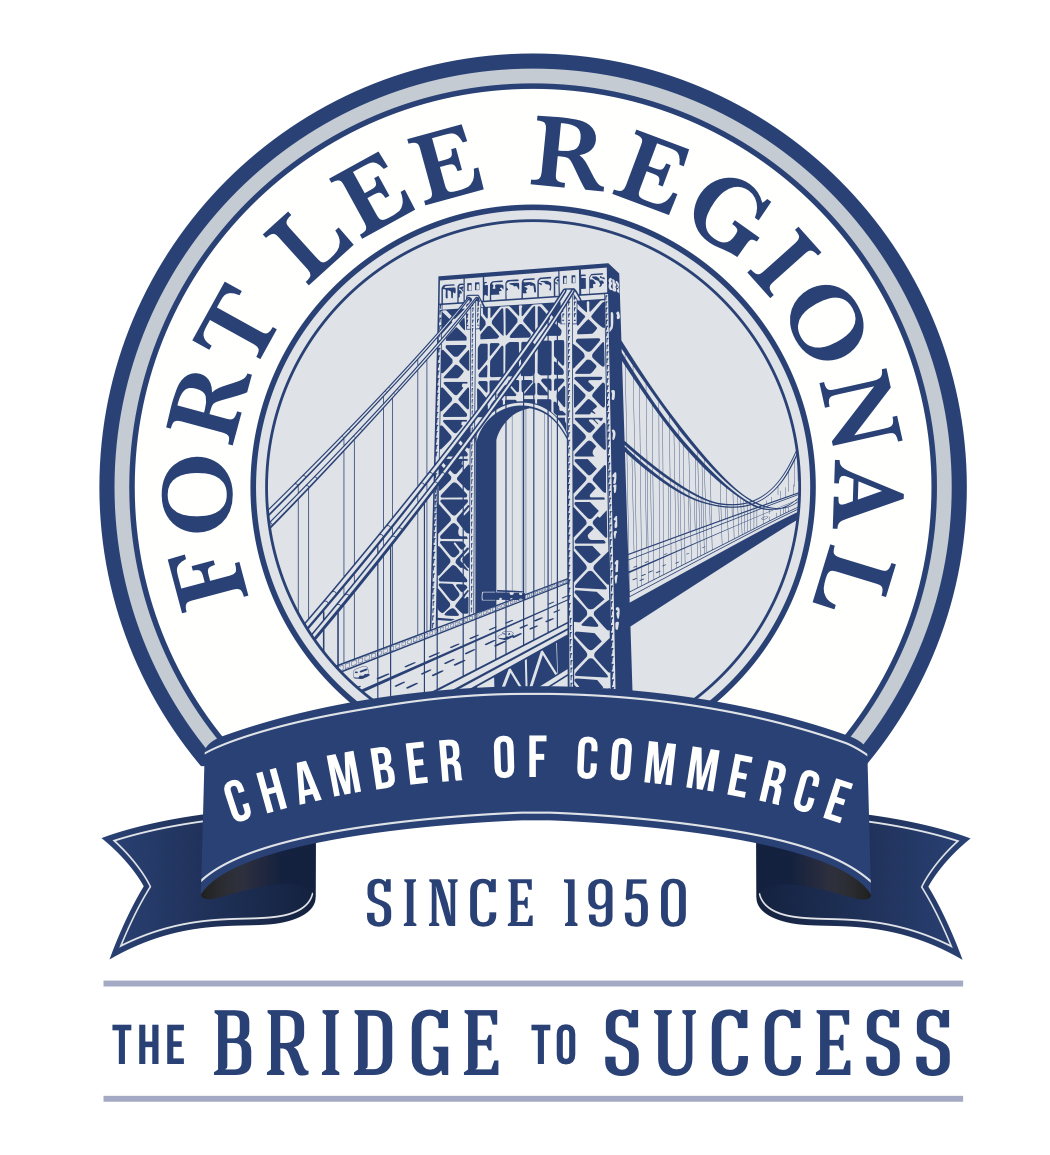 fort-lee-chamber-logo.jpg